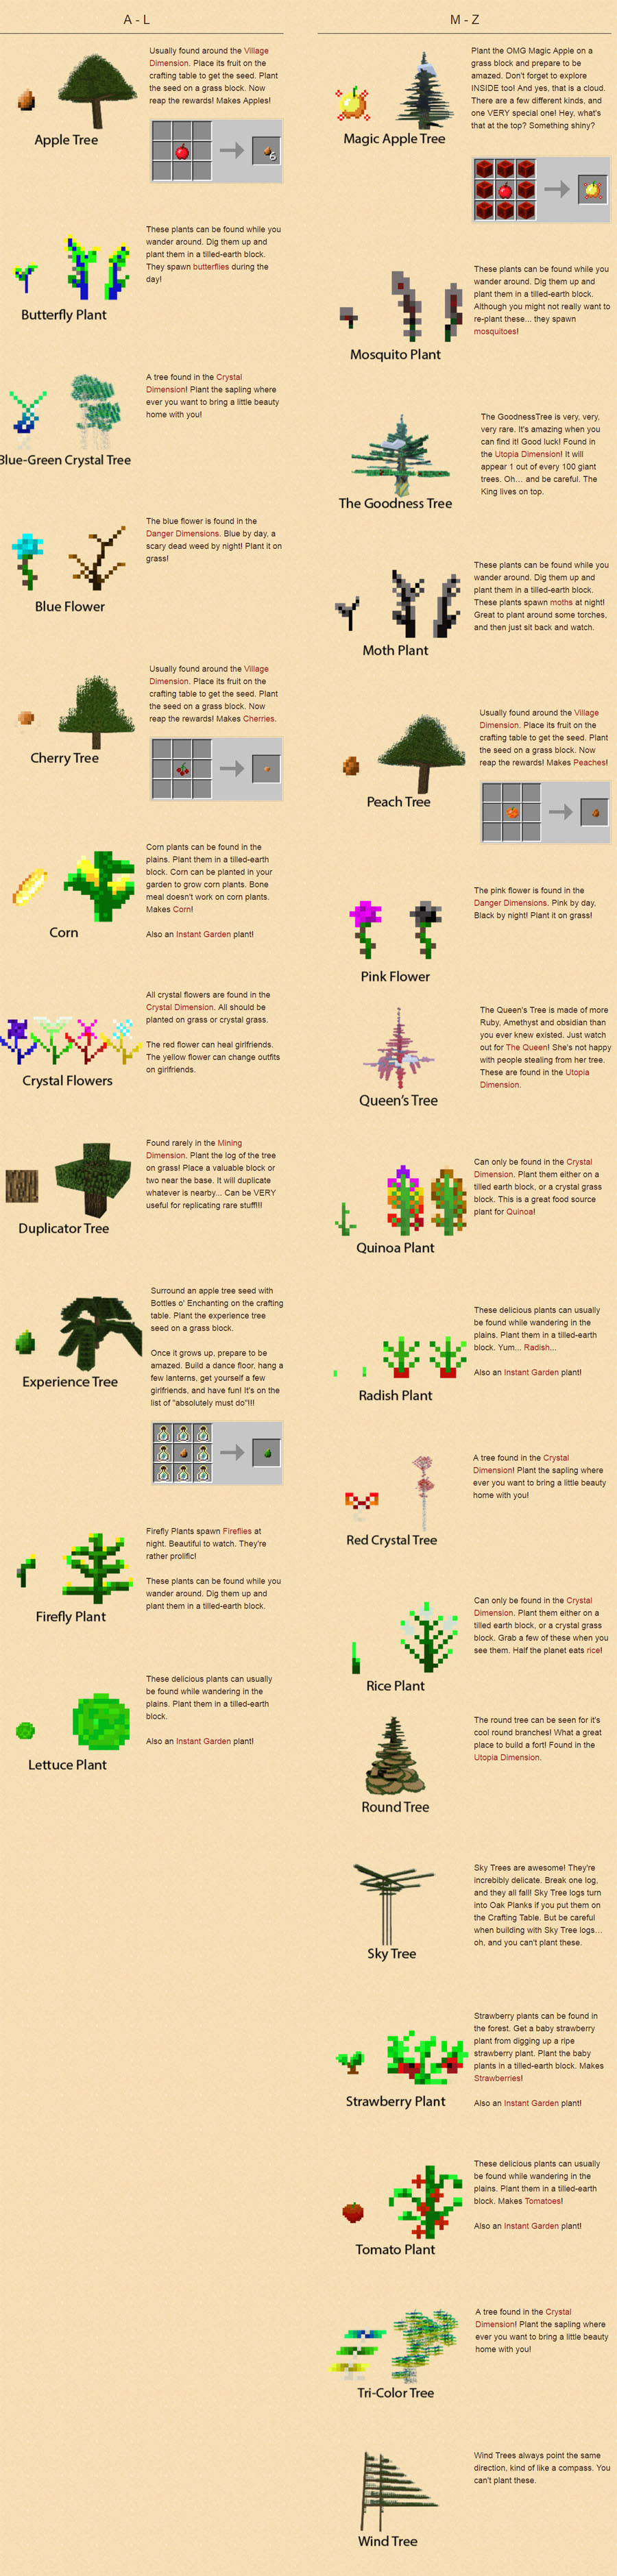 OreSpawn-Mod-Plants-and-Trees.jpg